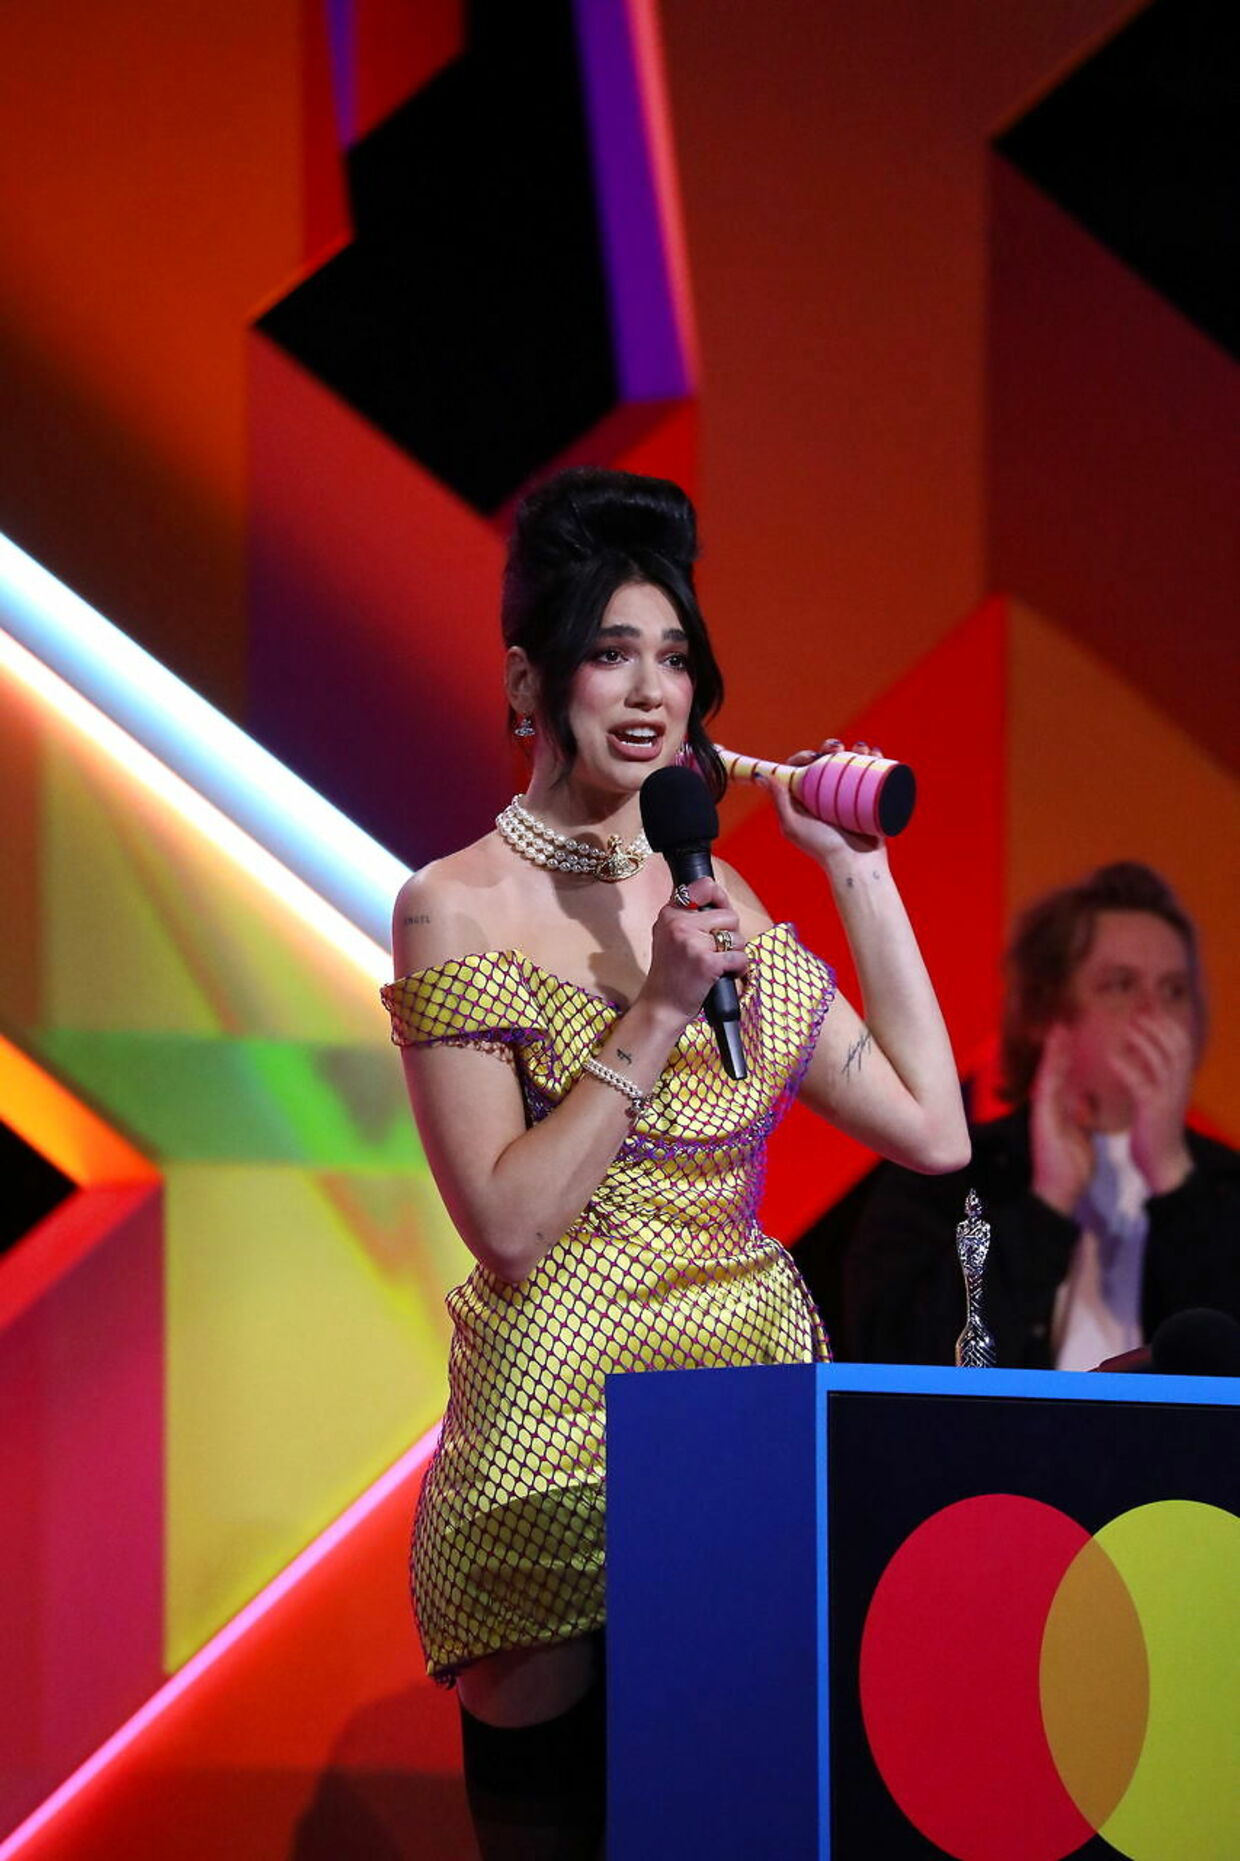 Singer Dua Lipa accepts the award at the BRIT Awards at the O2 Arena in London, Britain May 11, 2021. ©John Marshall/Handout via REUTERS THIS IMAGE HAS BEEN SUPPLIED BY A THIRD PARTY.NO RESALES.NO ARCHIVES. MANDATORY CREDIT.NO NEW USAGE USE AFTER 2200GMT ON JUNE 8, 2021. FOR EDITORIAL USE ONLY IN REPORTING ON - 41ST EDITION OF THE 2021 BRIT AWARDS. IMAGE MUST BE USED IN ITS ENTIRETY - NO CROPPING OR OTHER MODIFICATIONS.